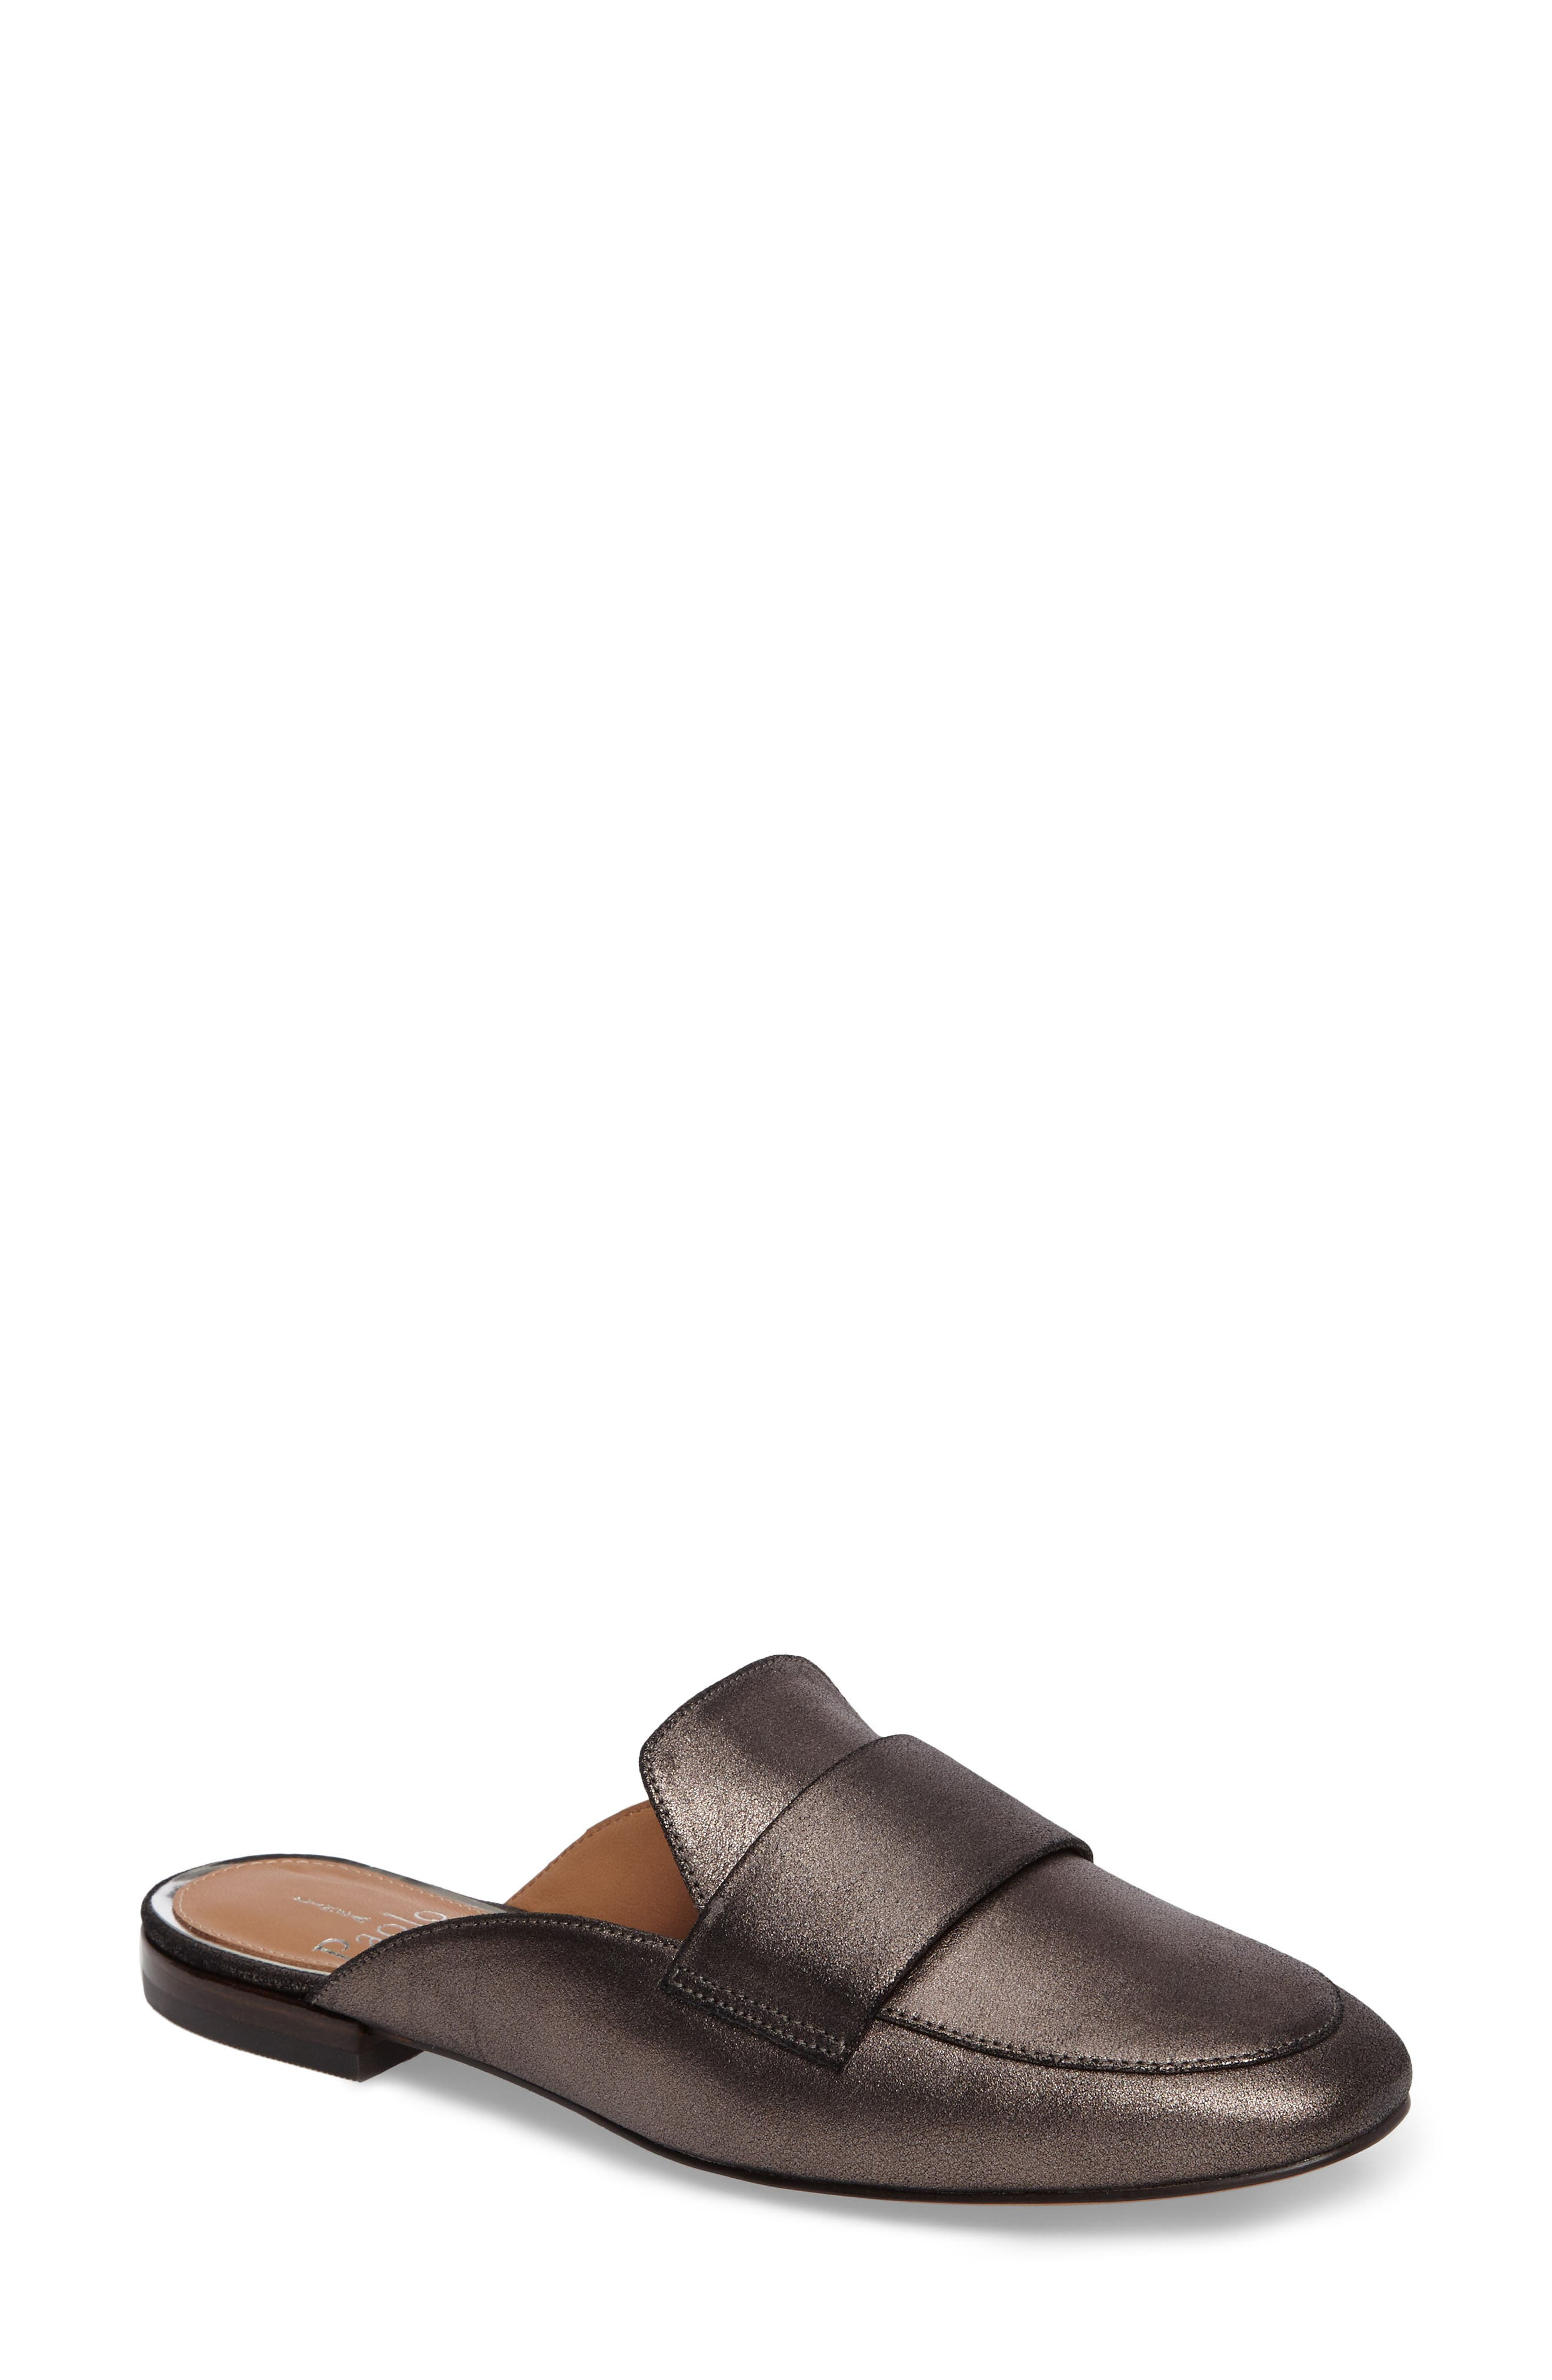 Annie Loafer Mule,                         Main,                         color, PEWTER SUEDE